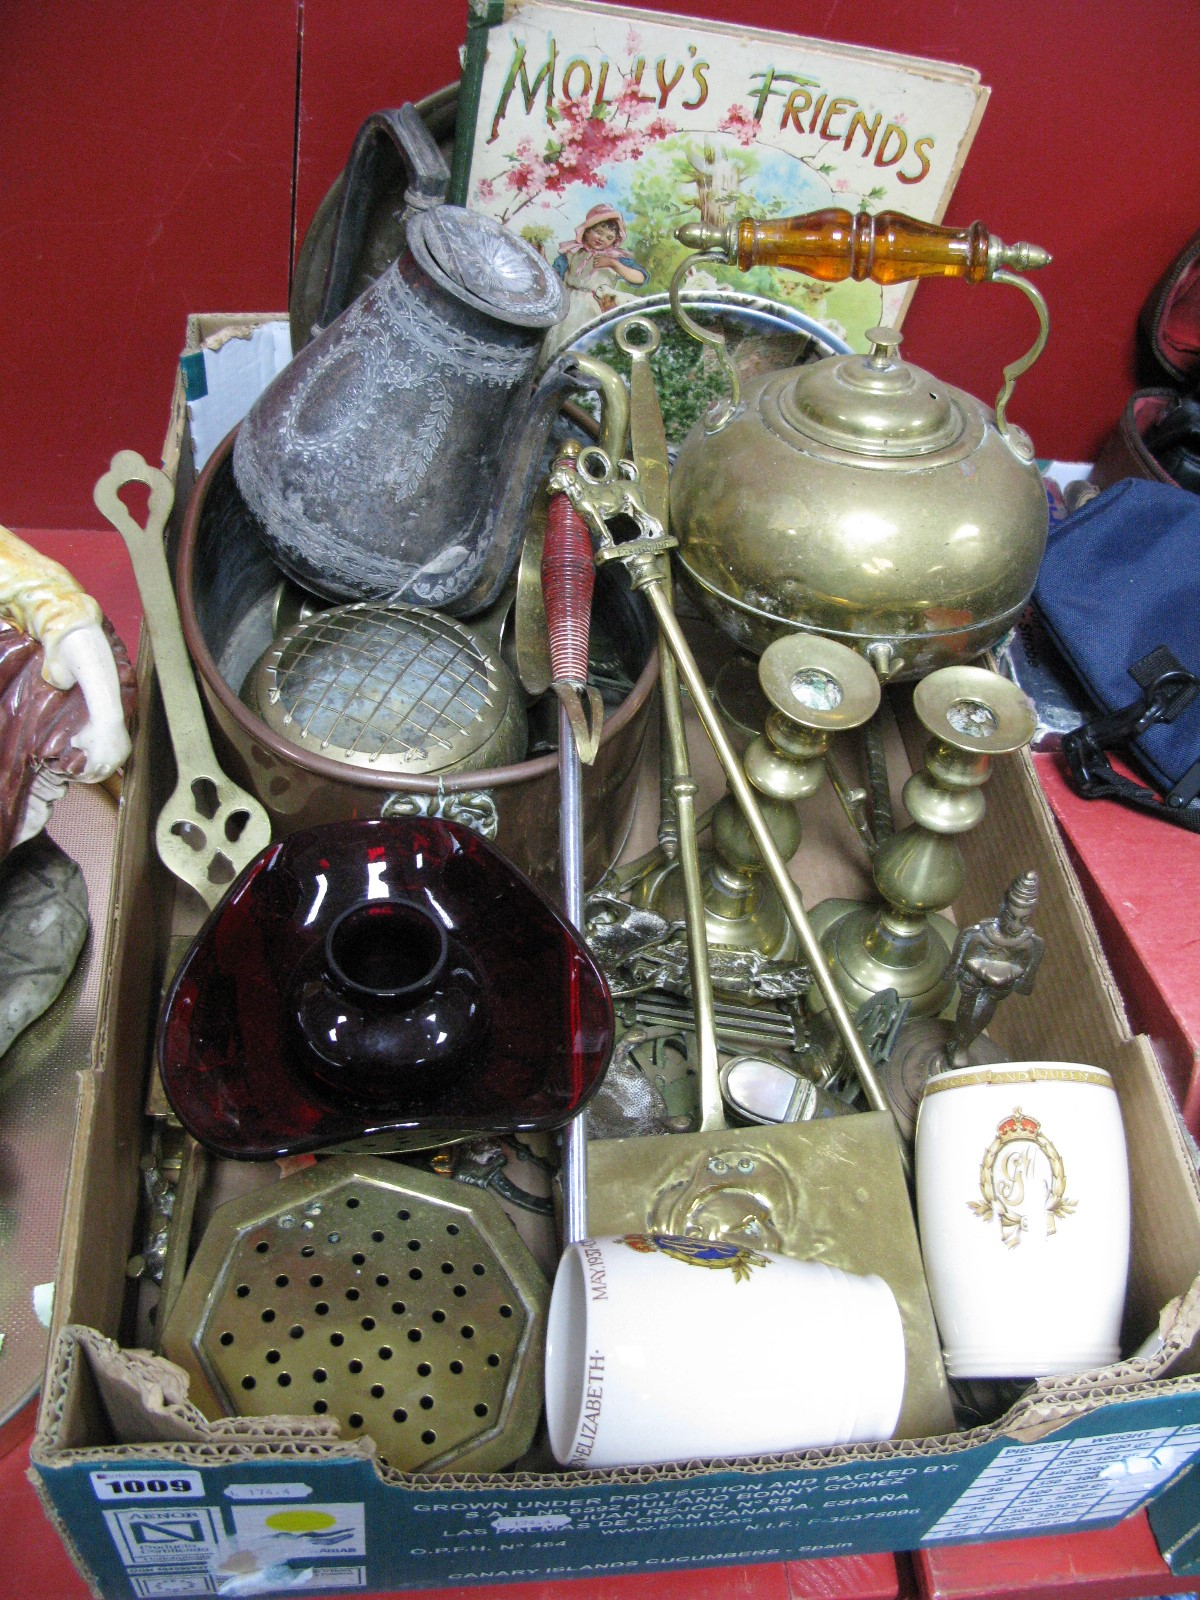 Lot 1009 - Oval Copper Pan, brass chestnut roasters, candlesticks, kettle, horse brasses, cabinet plates, mugs,